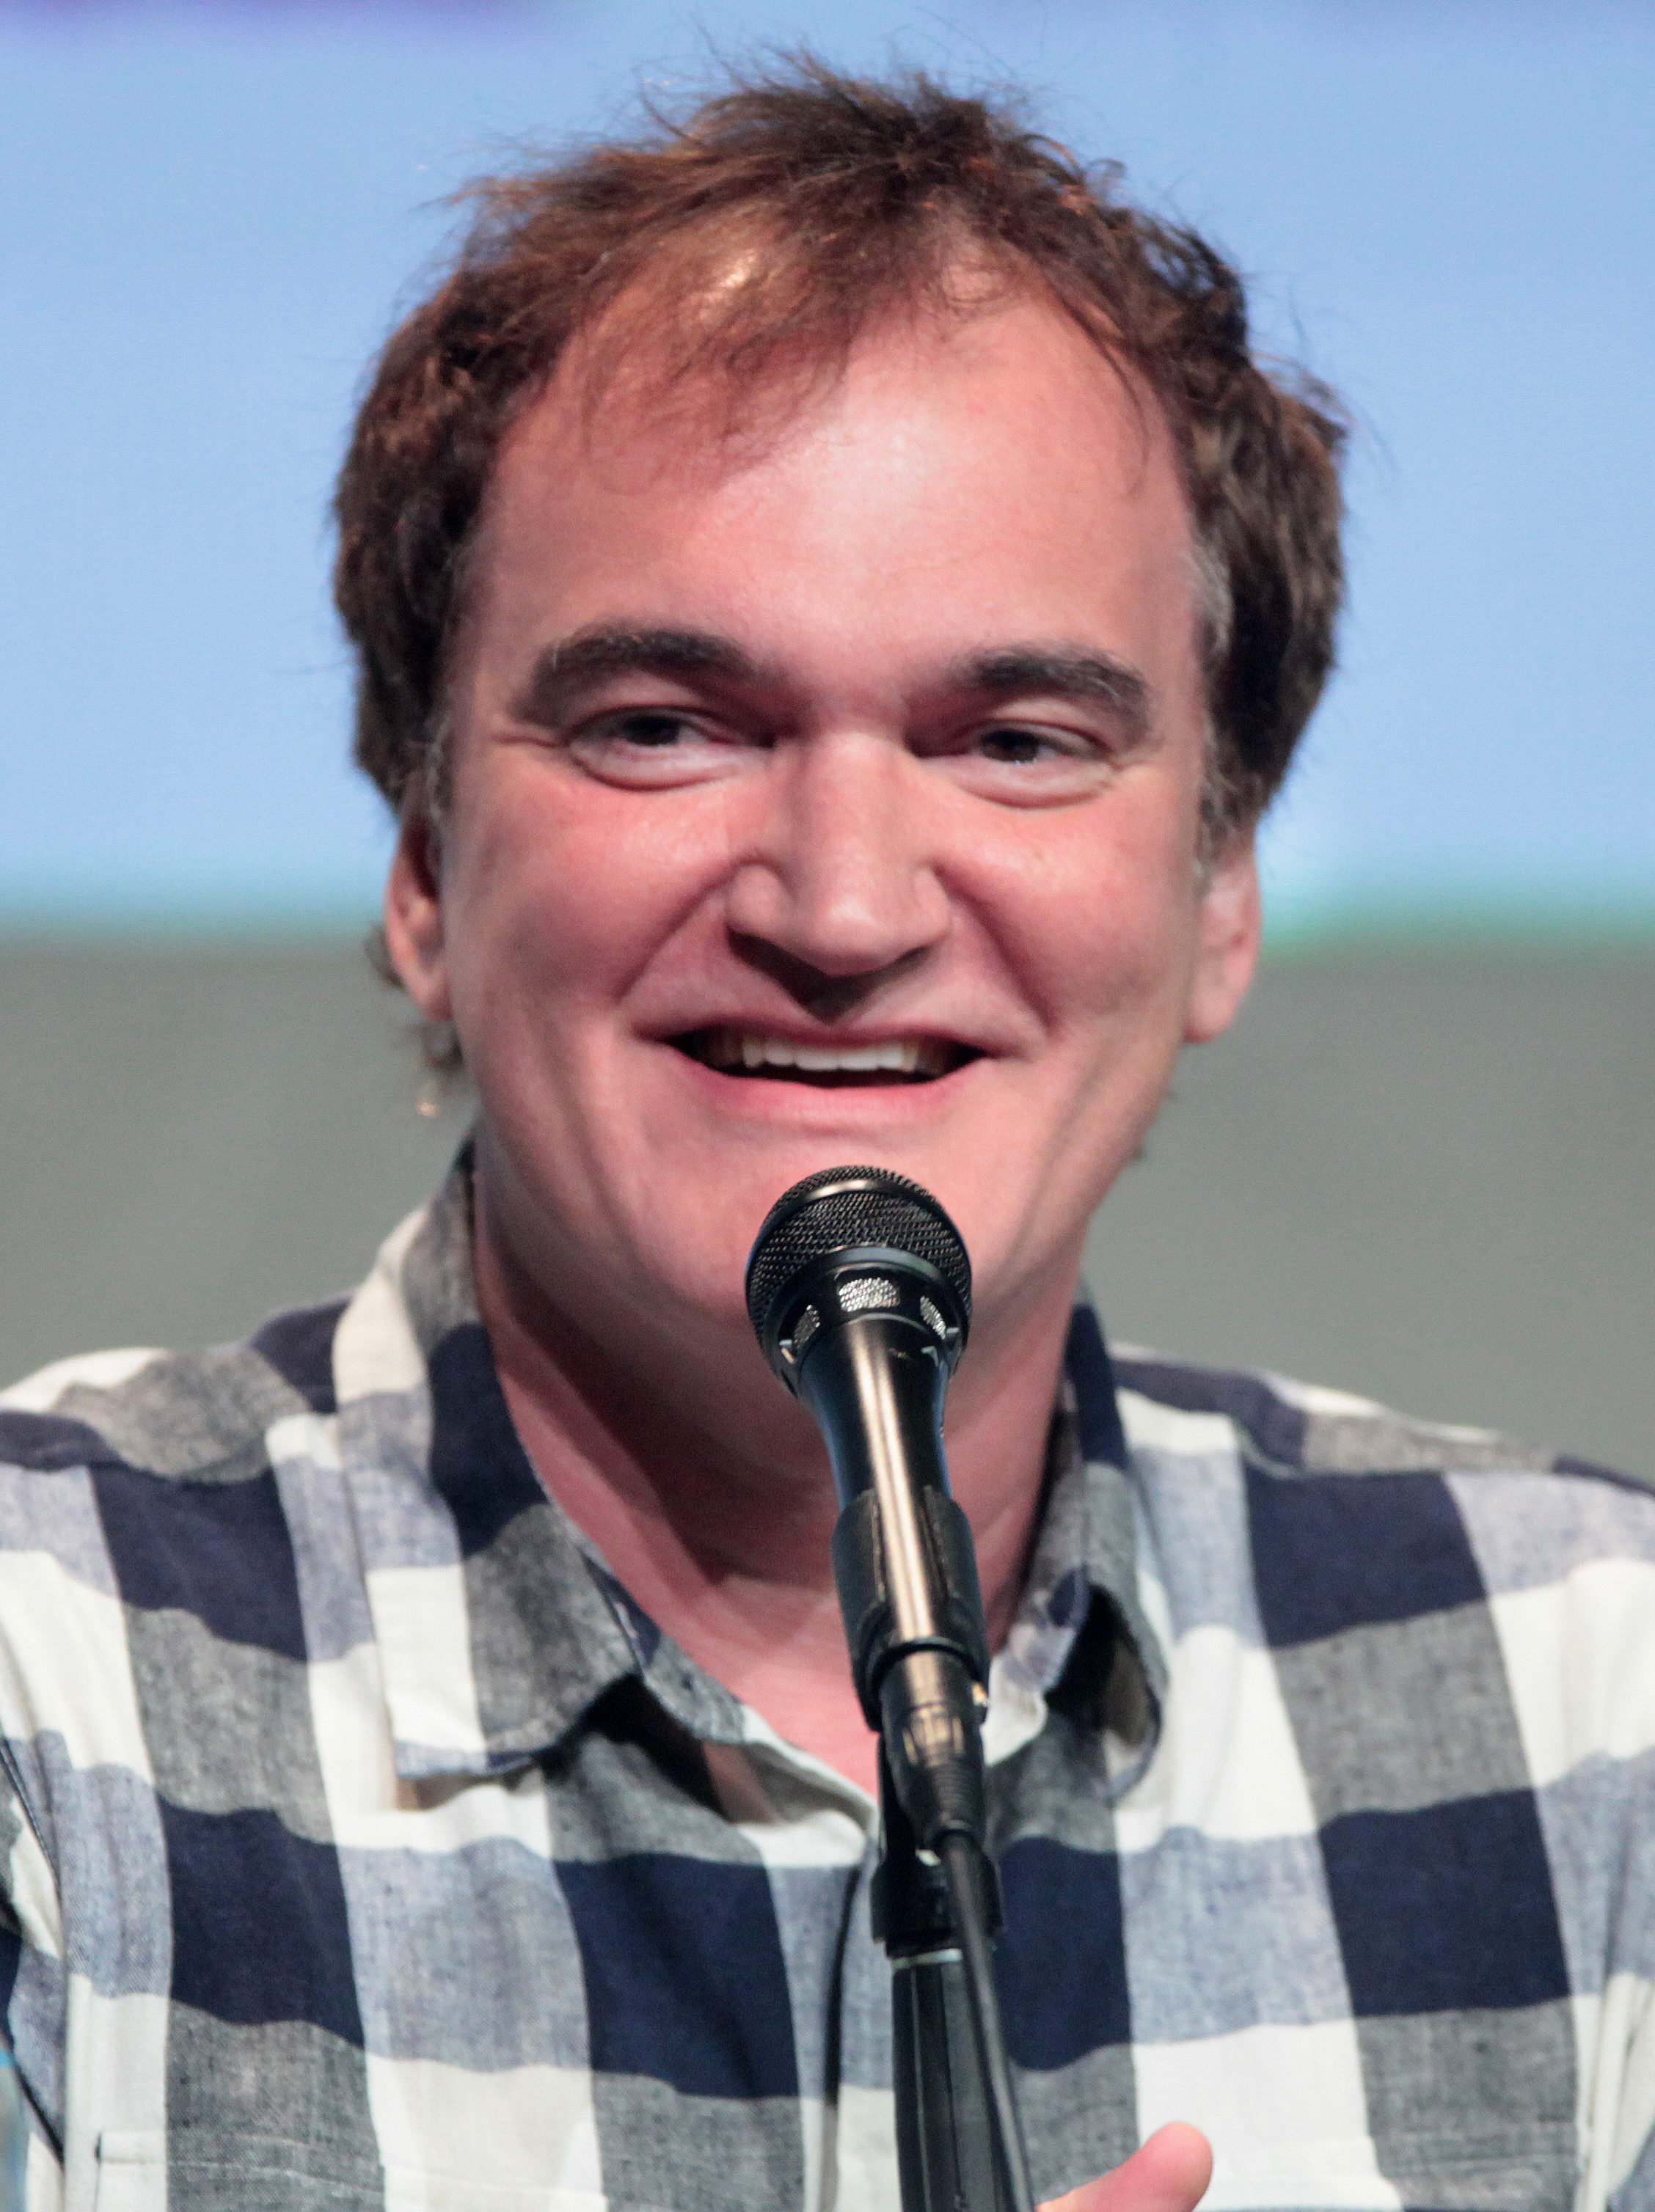 The 55-year old son of father Tony Tarantino and mother Connie Zastoupil Quentin Tarantino in 2018 photo. Quentin Tarantino earned a unknown million dollar salary - leaving the net worth at 90 million in 2018